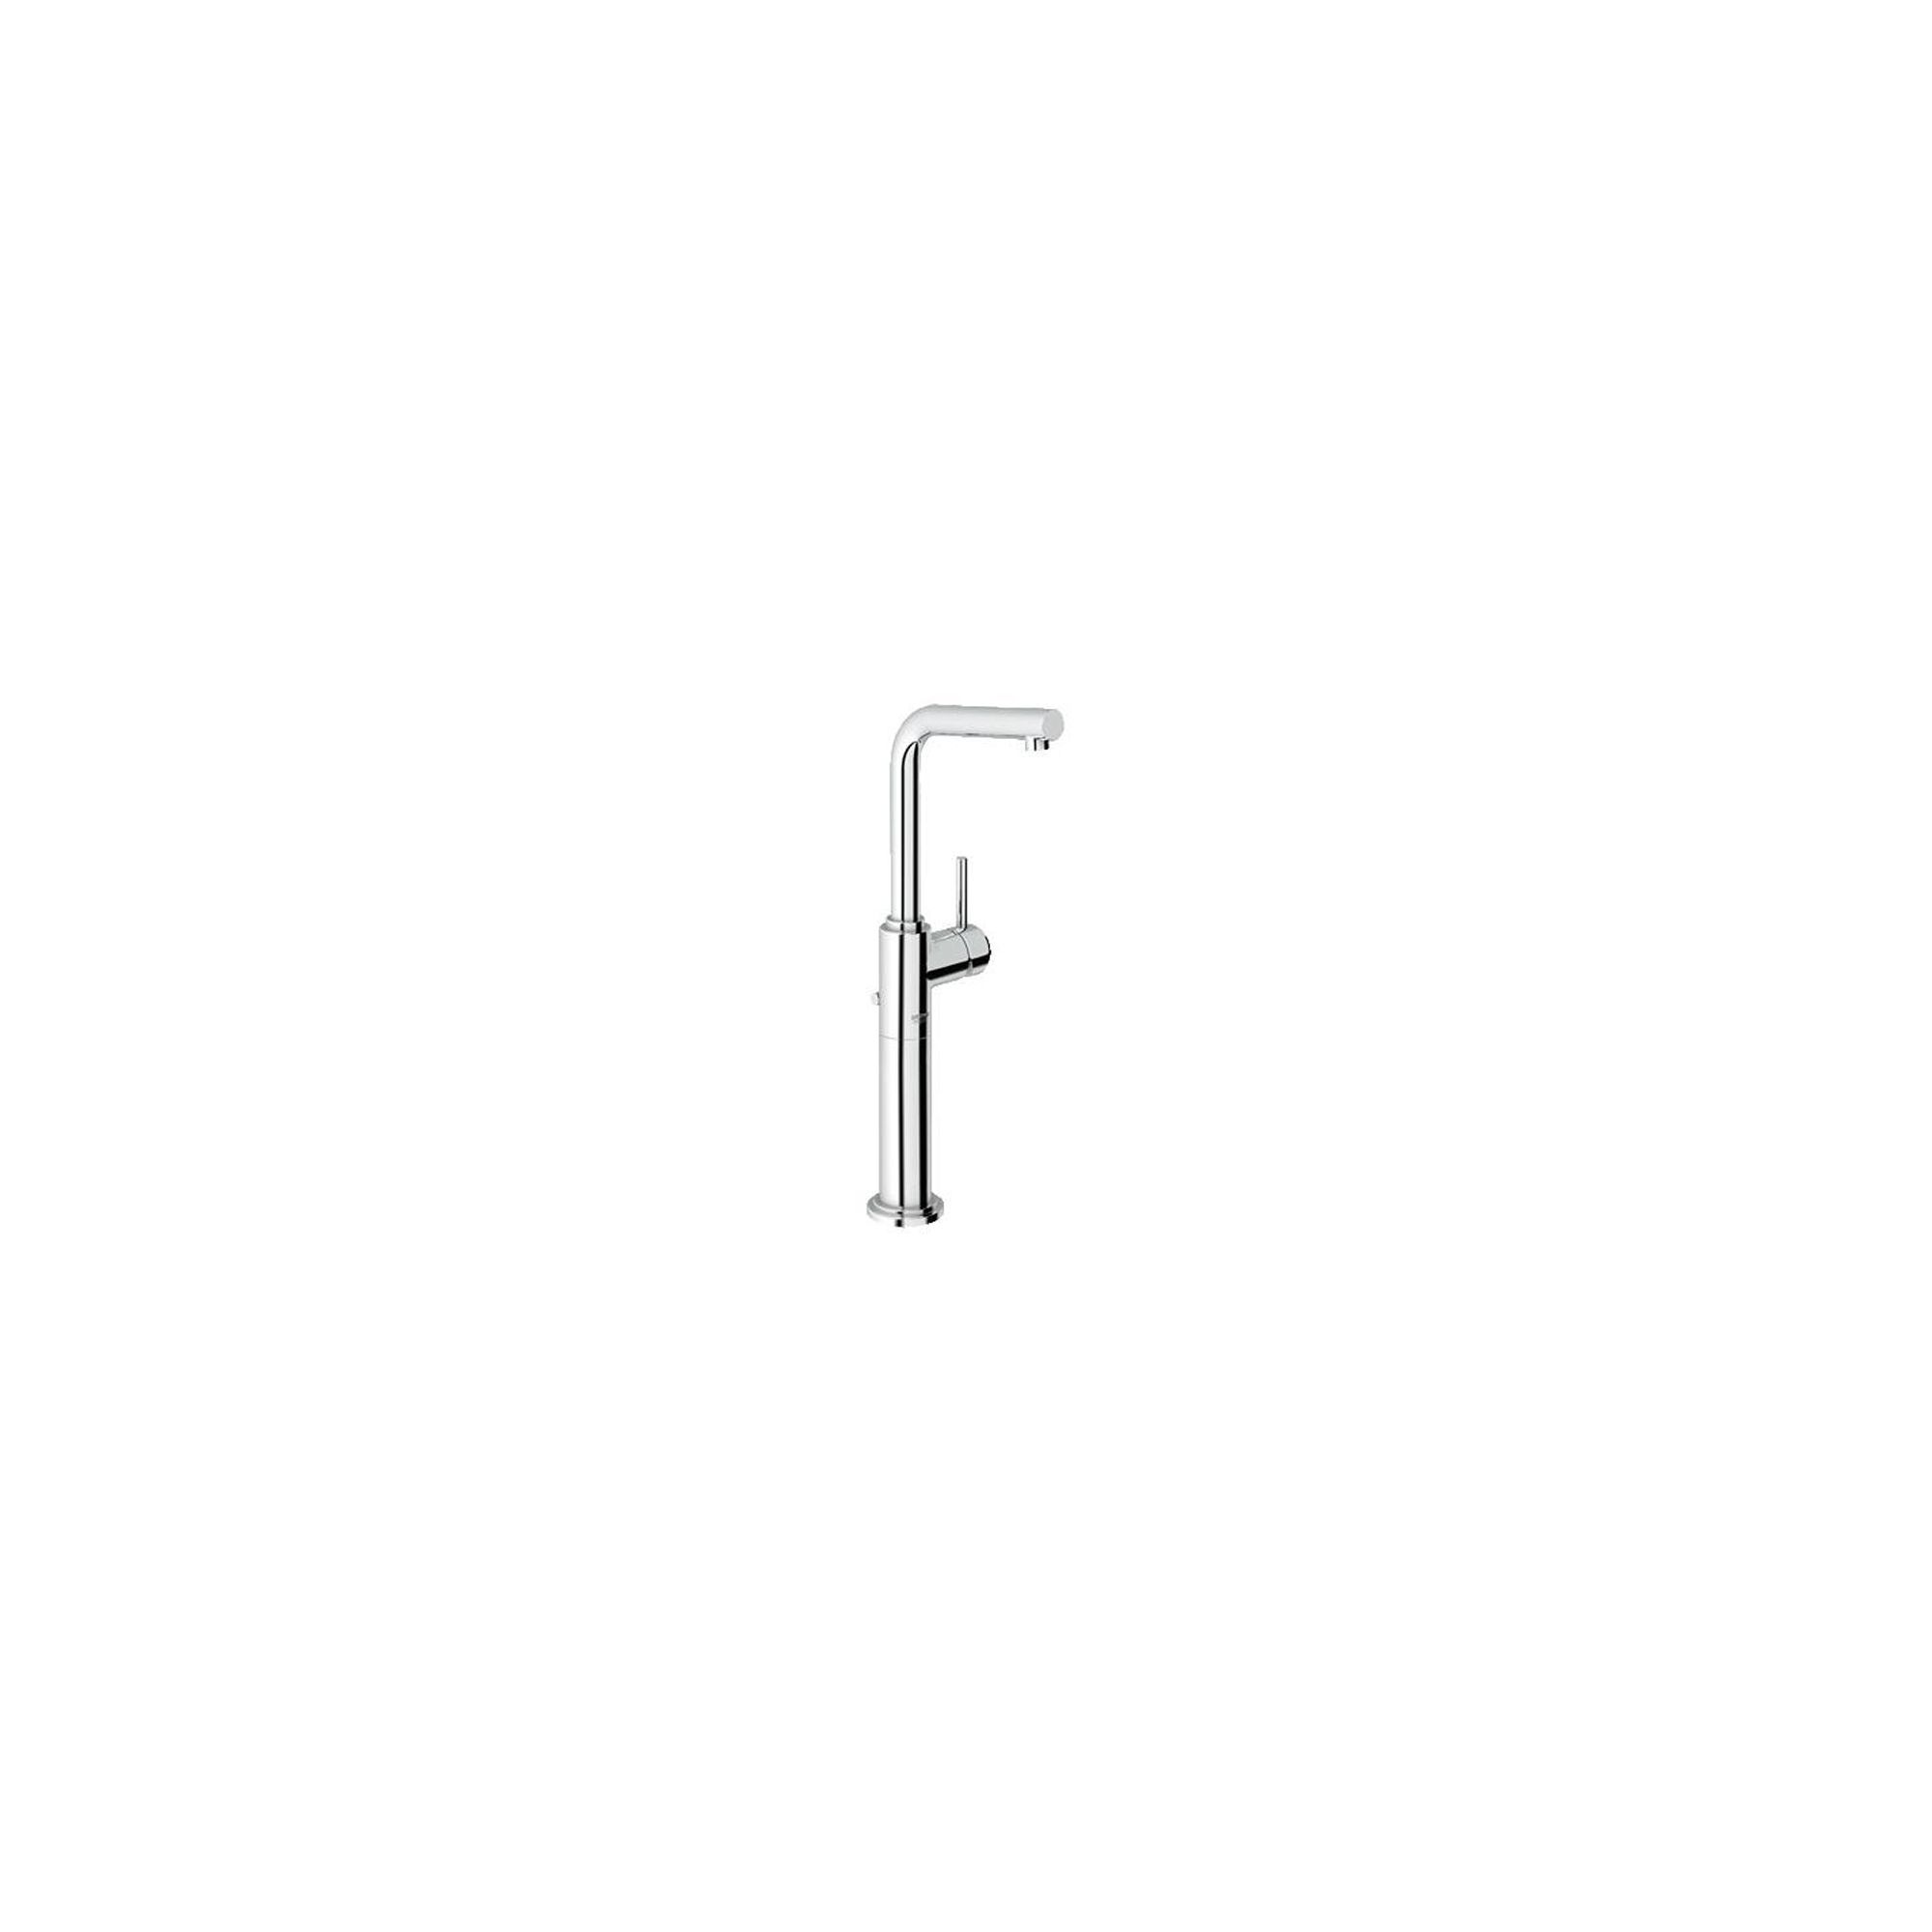 Grohe Atrio One Tall Mono Basin Mixer Tap with L-Spout, Single Handle, Chrome at Tescos Direct